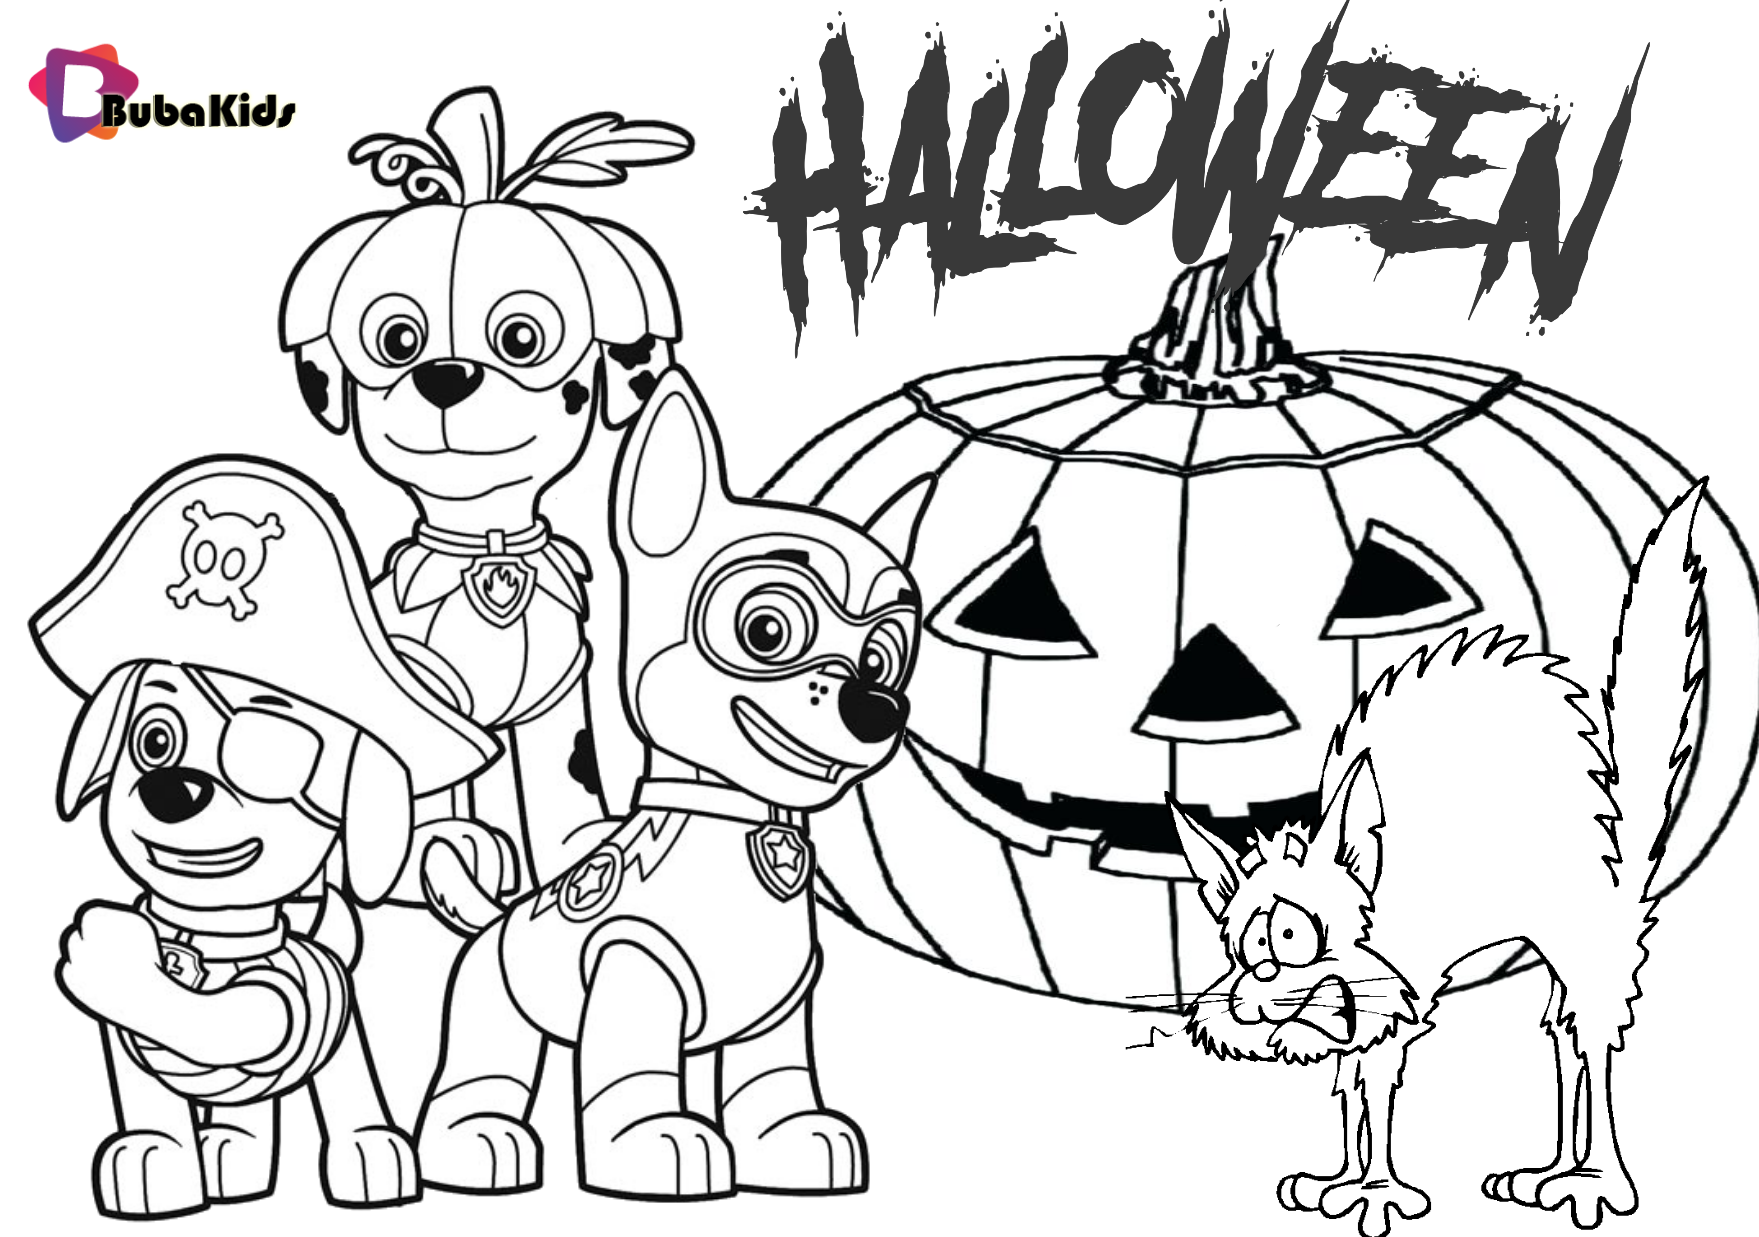 Paw Patrol Halloween Party 2019 Printable Coloring Page Halloween Party Paw Patrol Hal Paw Patrol Coloring Pages Cartoon Coloring Pages Halloween Coloring